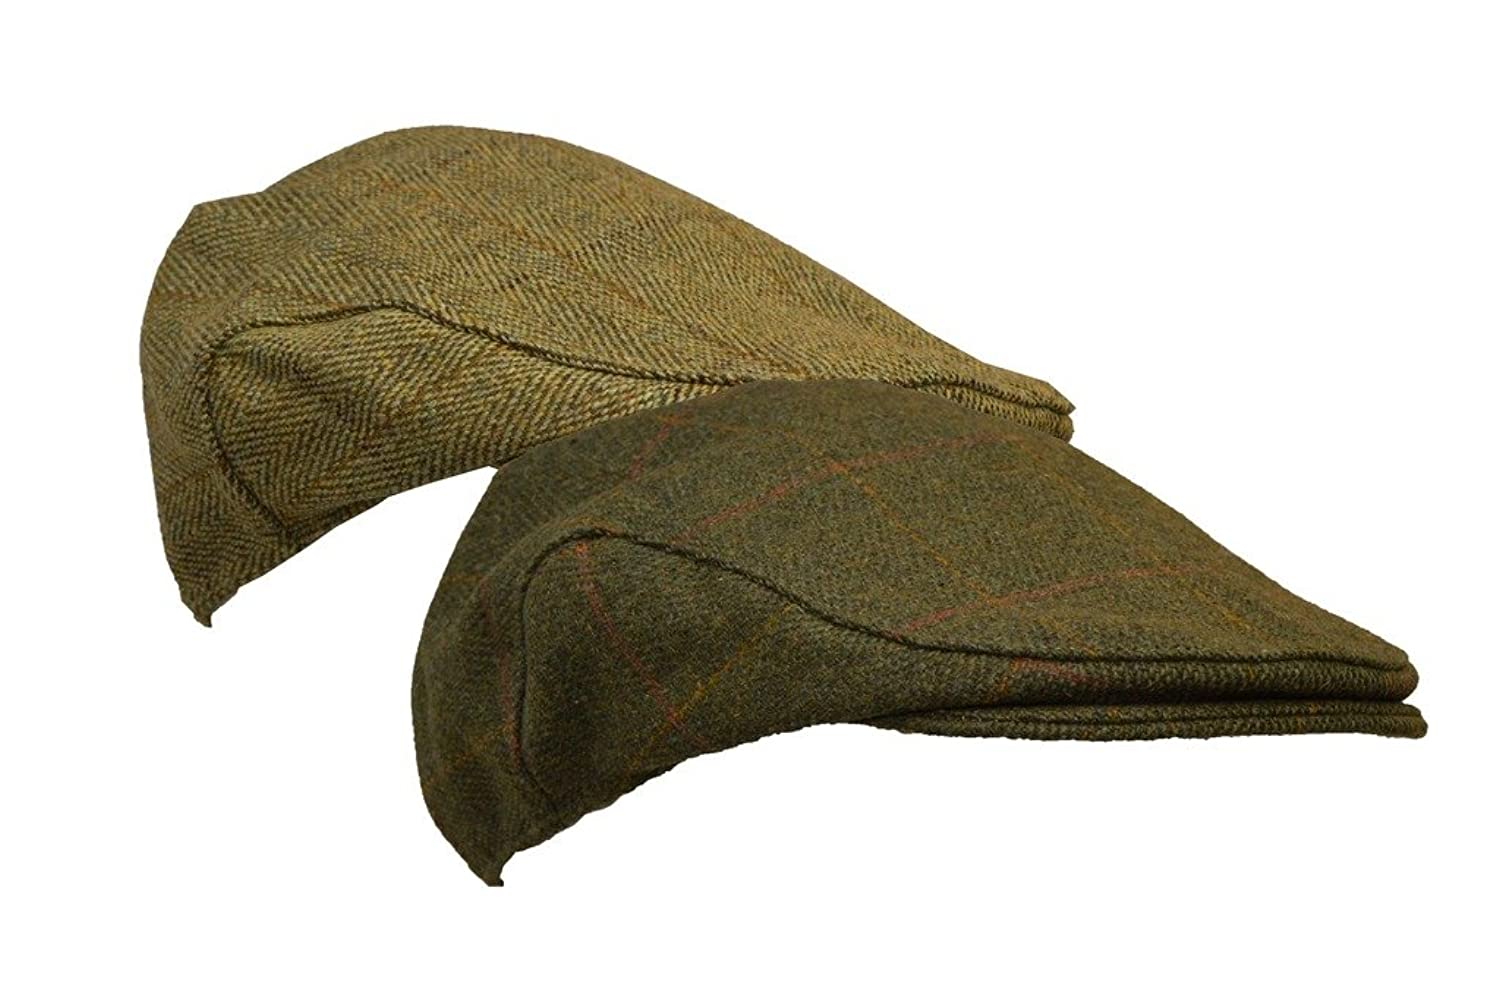 Men's Vintage Workwear – 1920s, 1930s, 1940s, 1950s Walker and Hawkes Mens Derby Tweed Flat Cap Hunting Shooting Countrywear Hat $22.02 AT vintagedancer.com